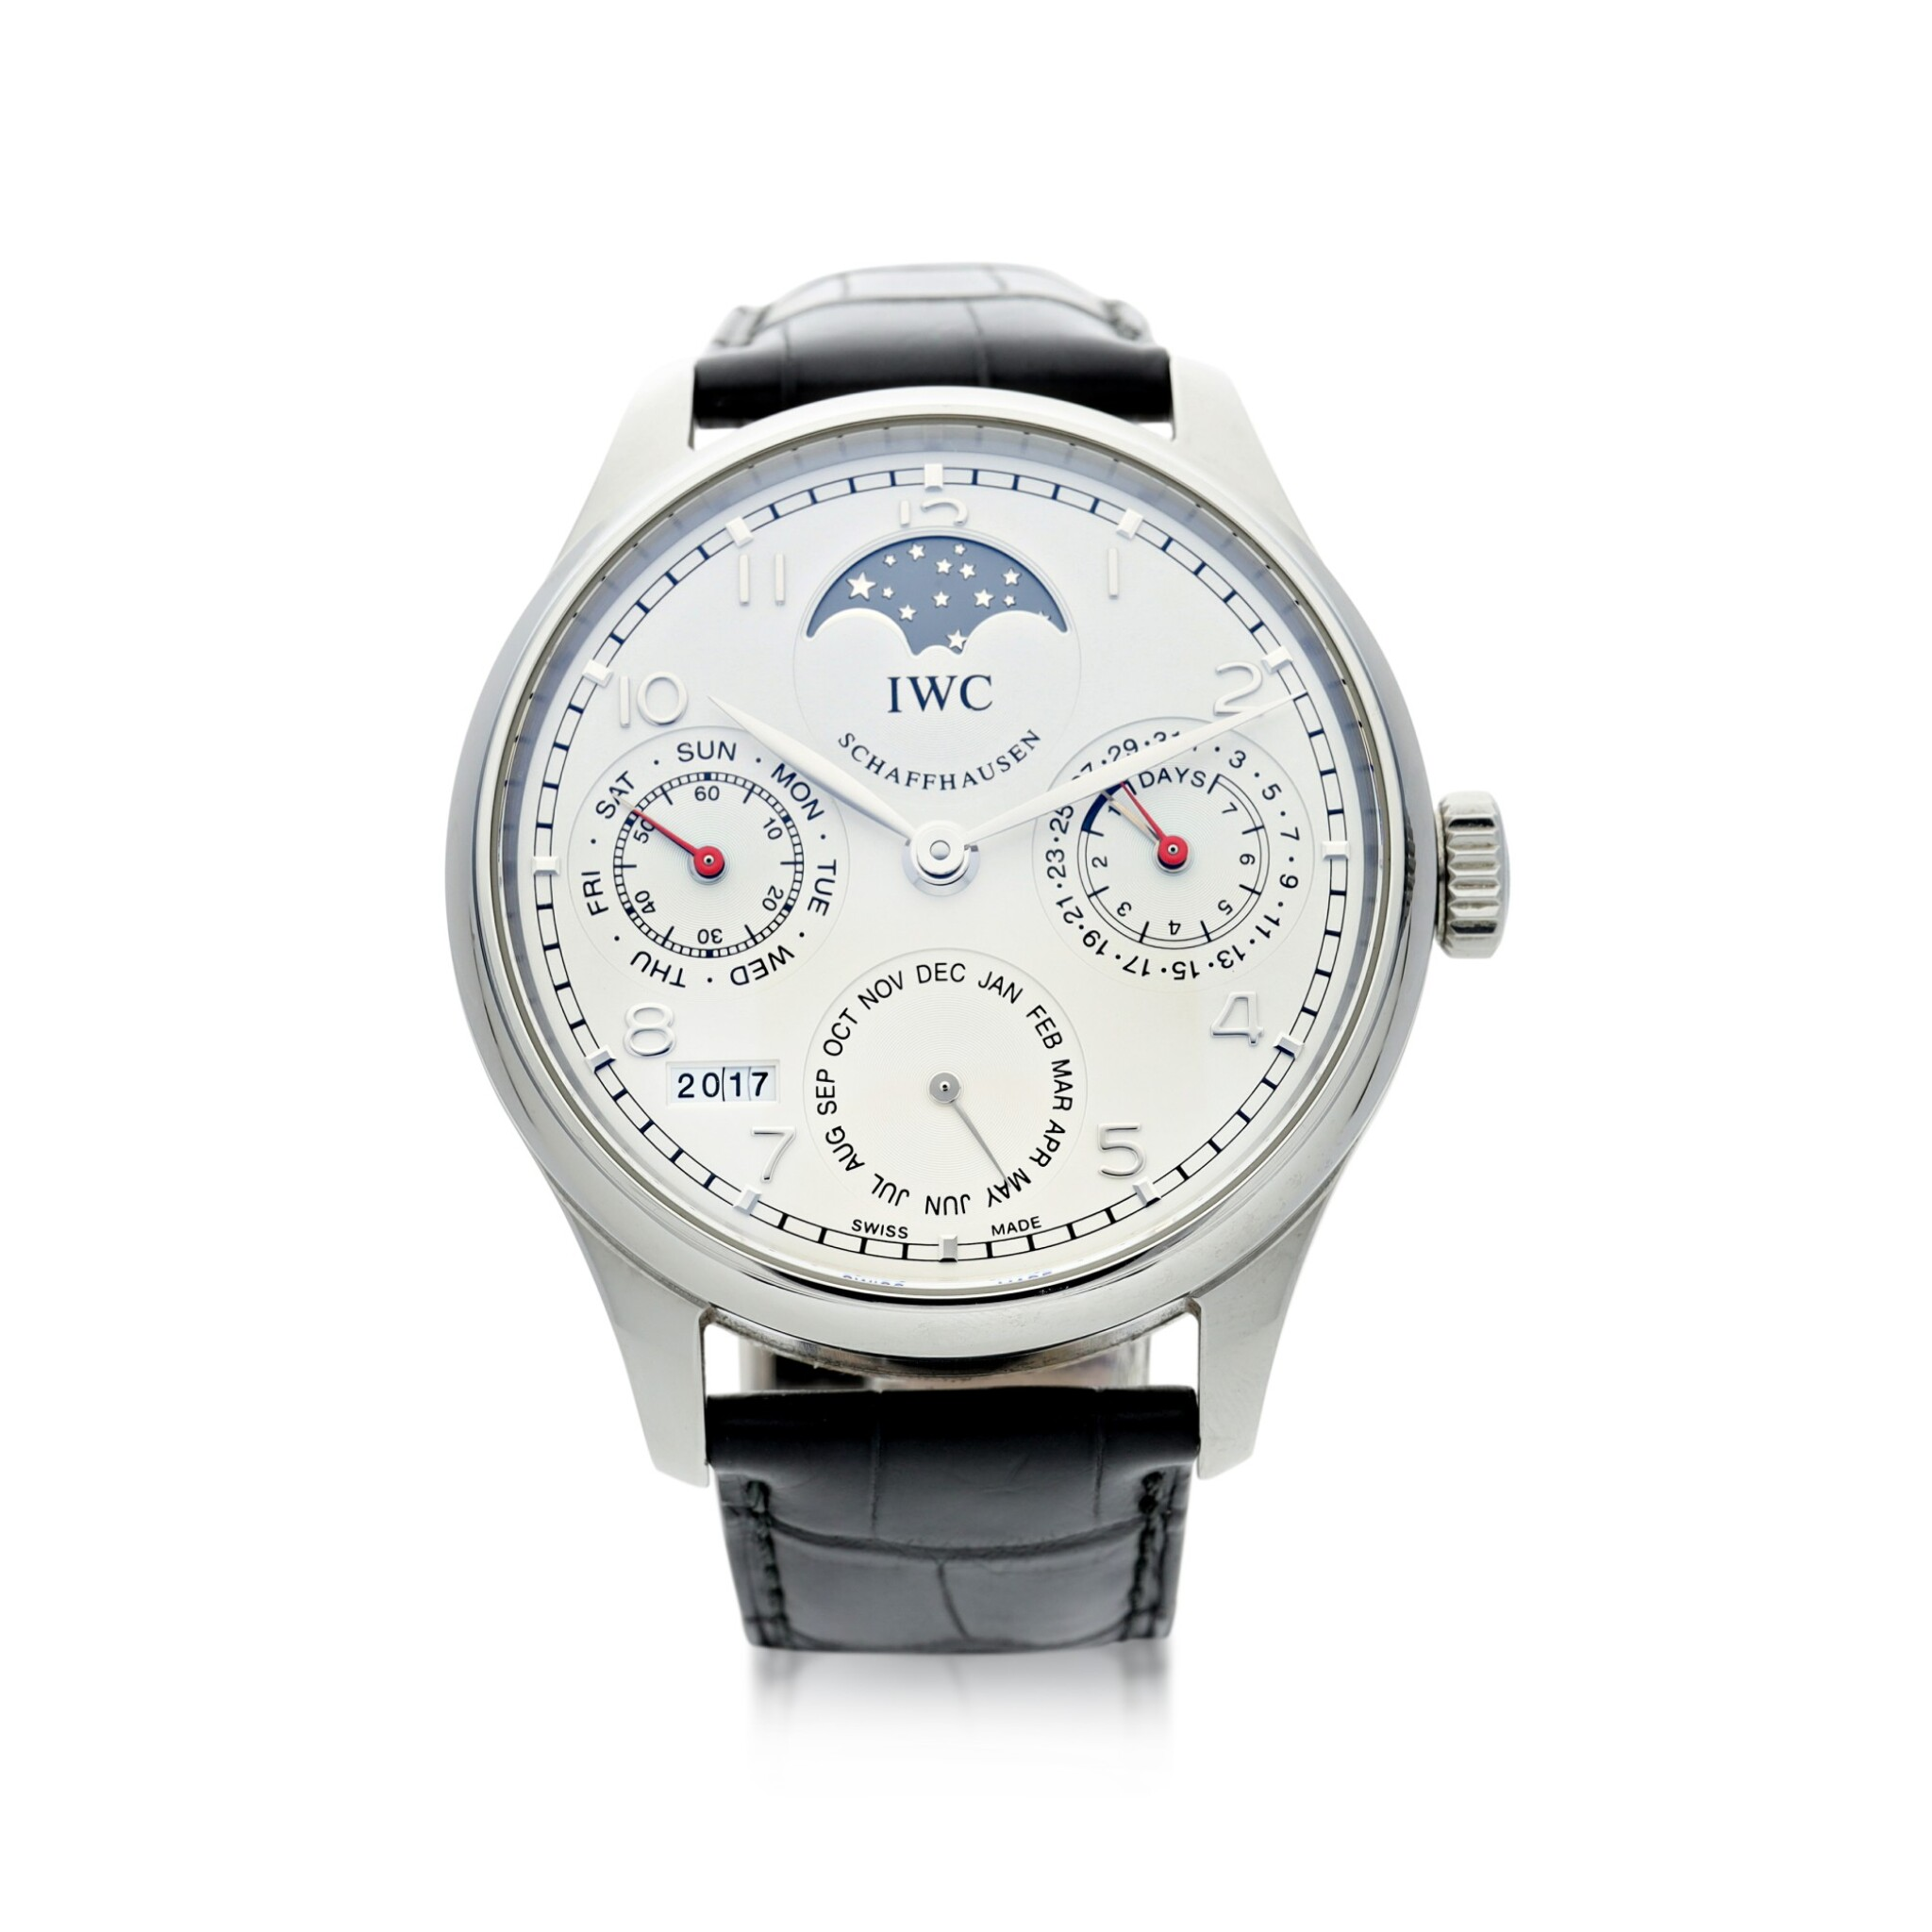 View full screen - View 1 of Lot 23. IWC   REFERENCE IW5023-08 PORTUGIESER   A STAINLESS STEEL AUTOMATIC PERPETUAL CALENDAR WRISTWATCH MOON PHASES AND POWER RESERVE INDICATION, CIRCA 2015.